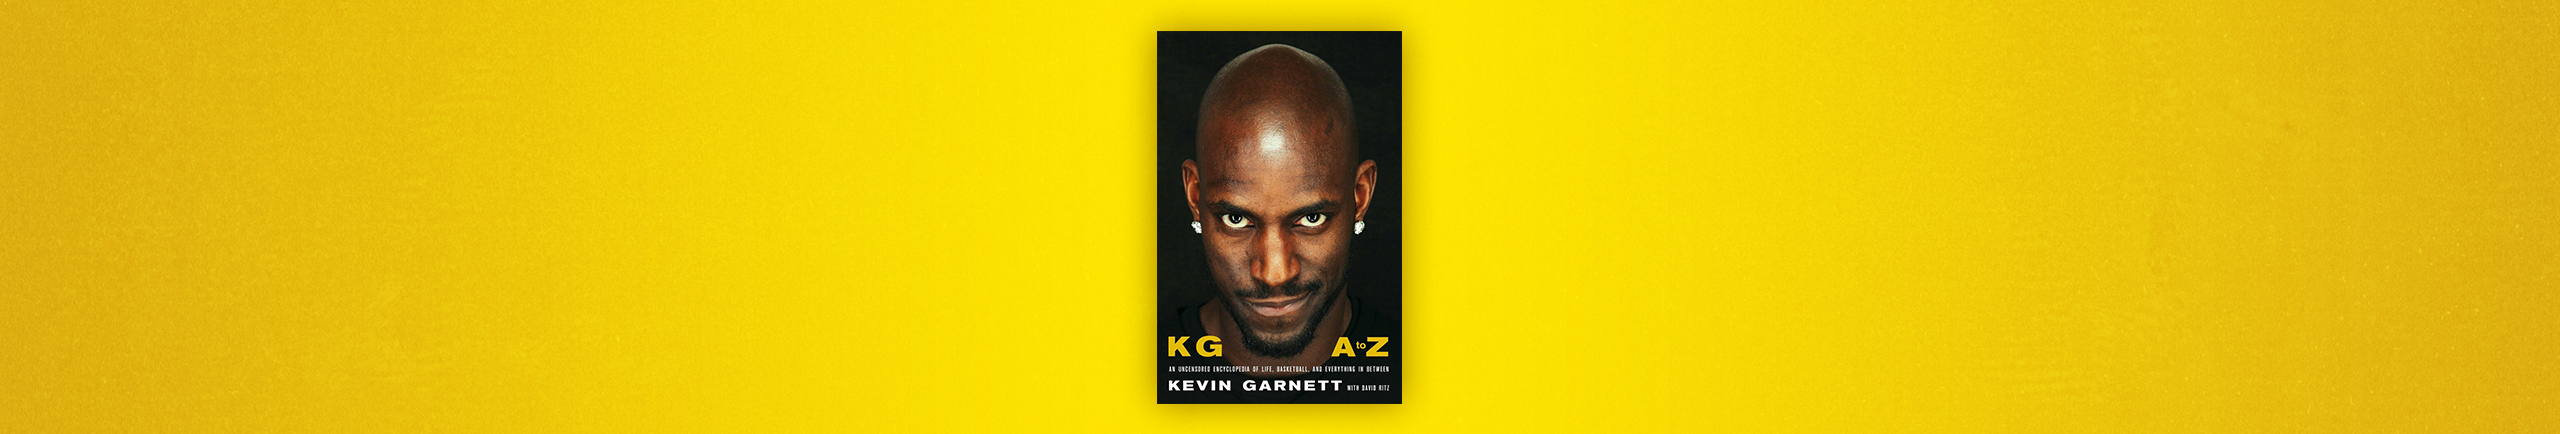 KG: A to Z by Kevin Garnett